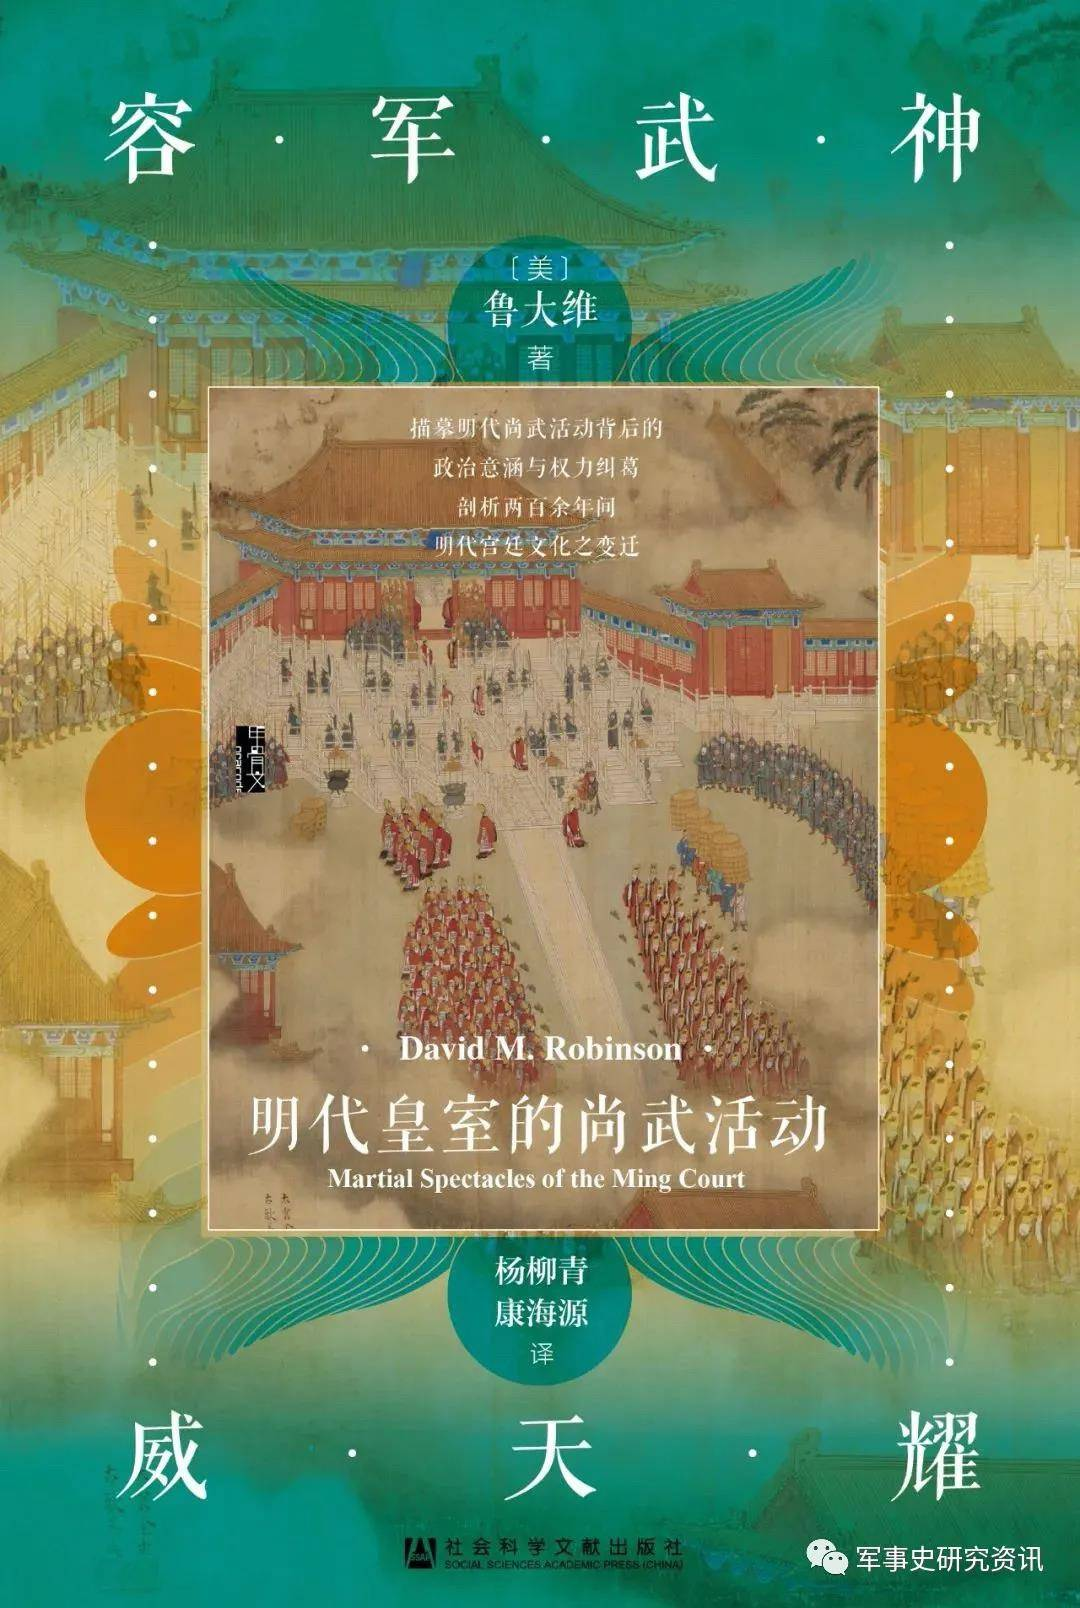 Textbook cover with Chinese text